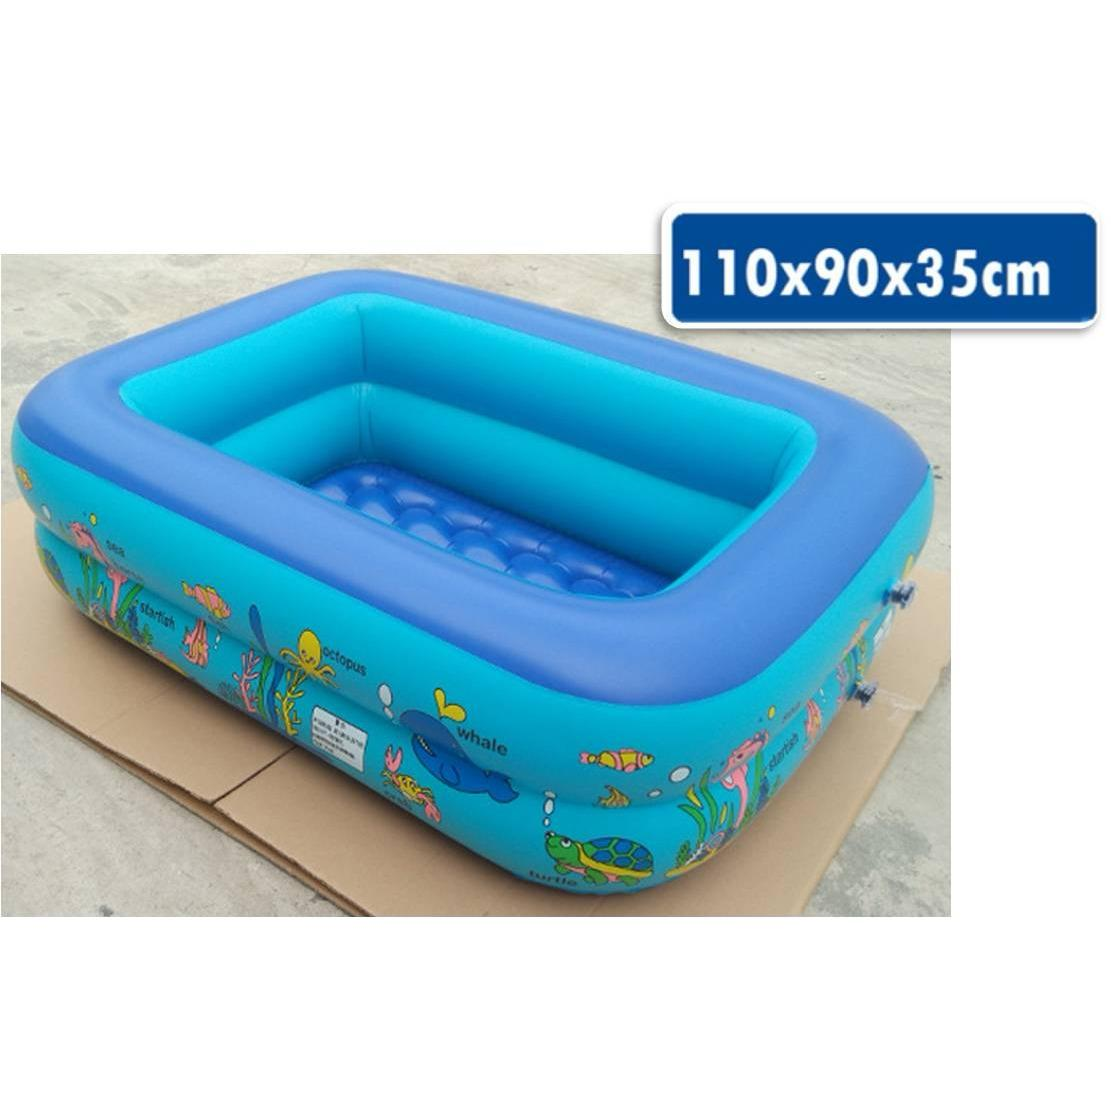 Buy Inflatable Swimming Baby Toddler Kids Child Boy G*rl Pool Swim Float Bathtub Tub Intex Shower Wading 110 90 35Cm